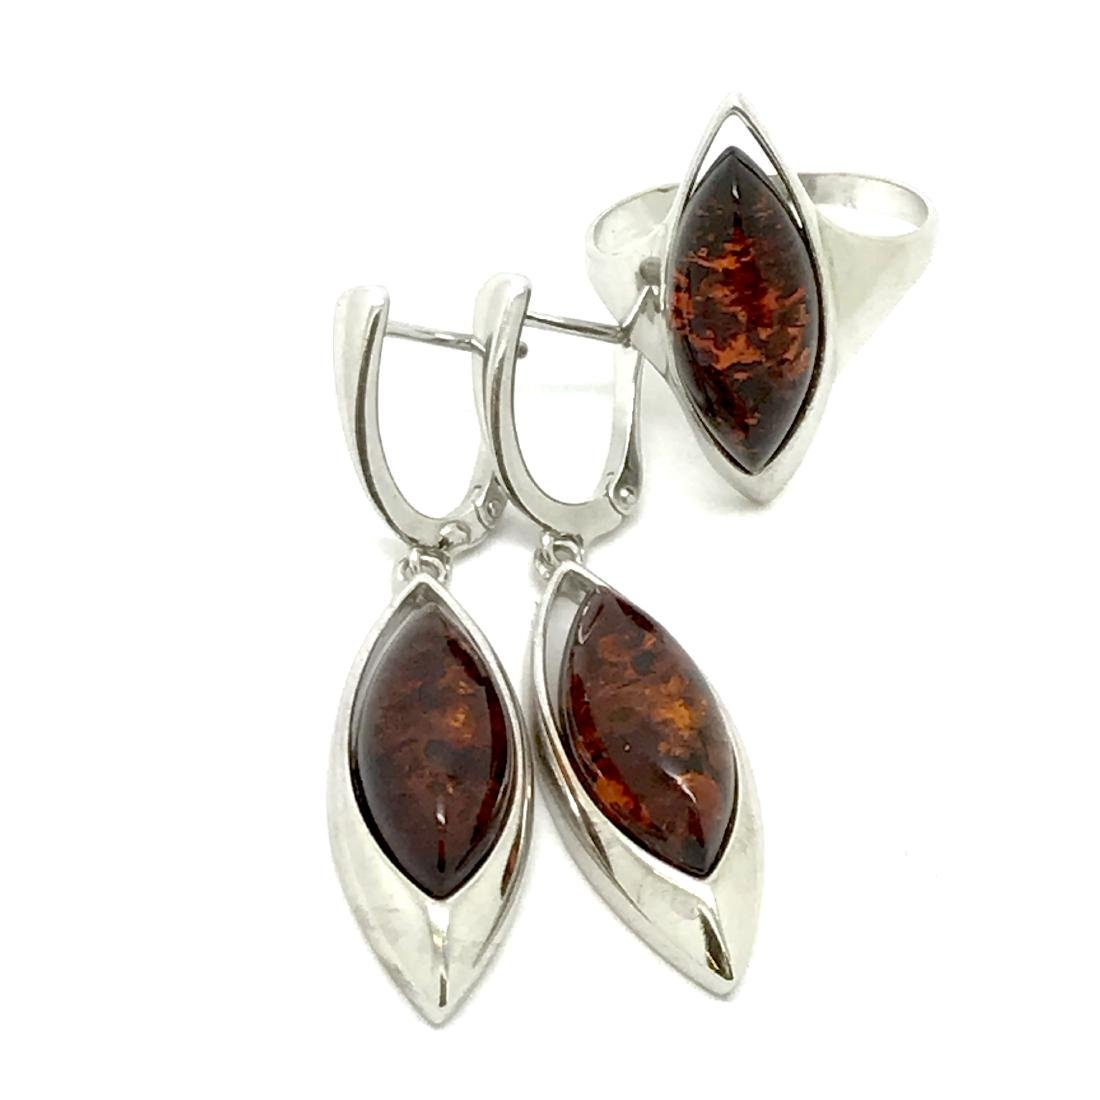 Sterling silver 925 set with Baltic amber : hanging